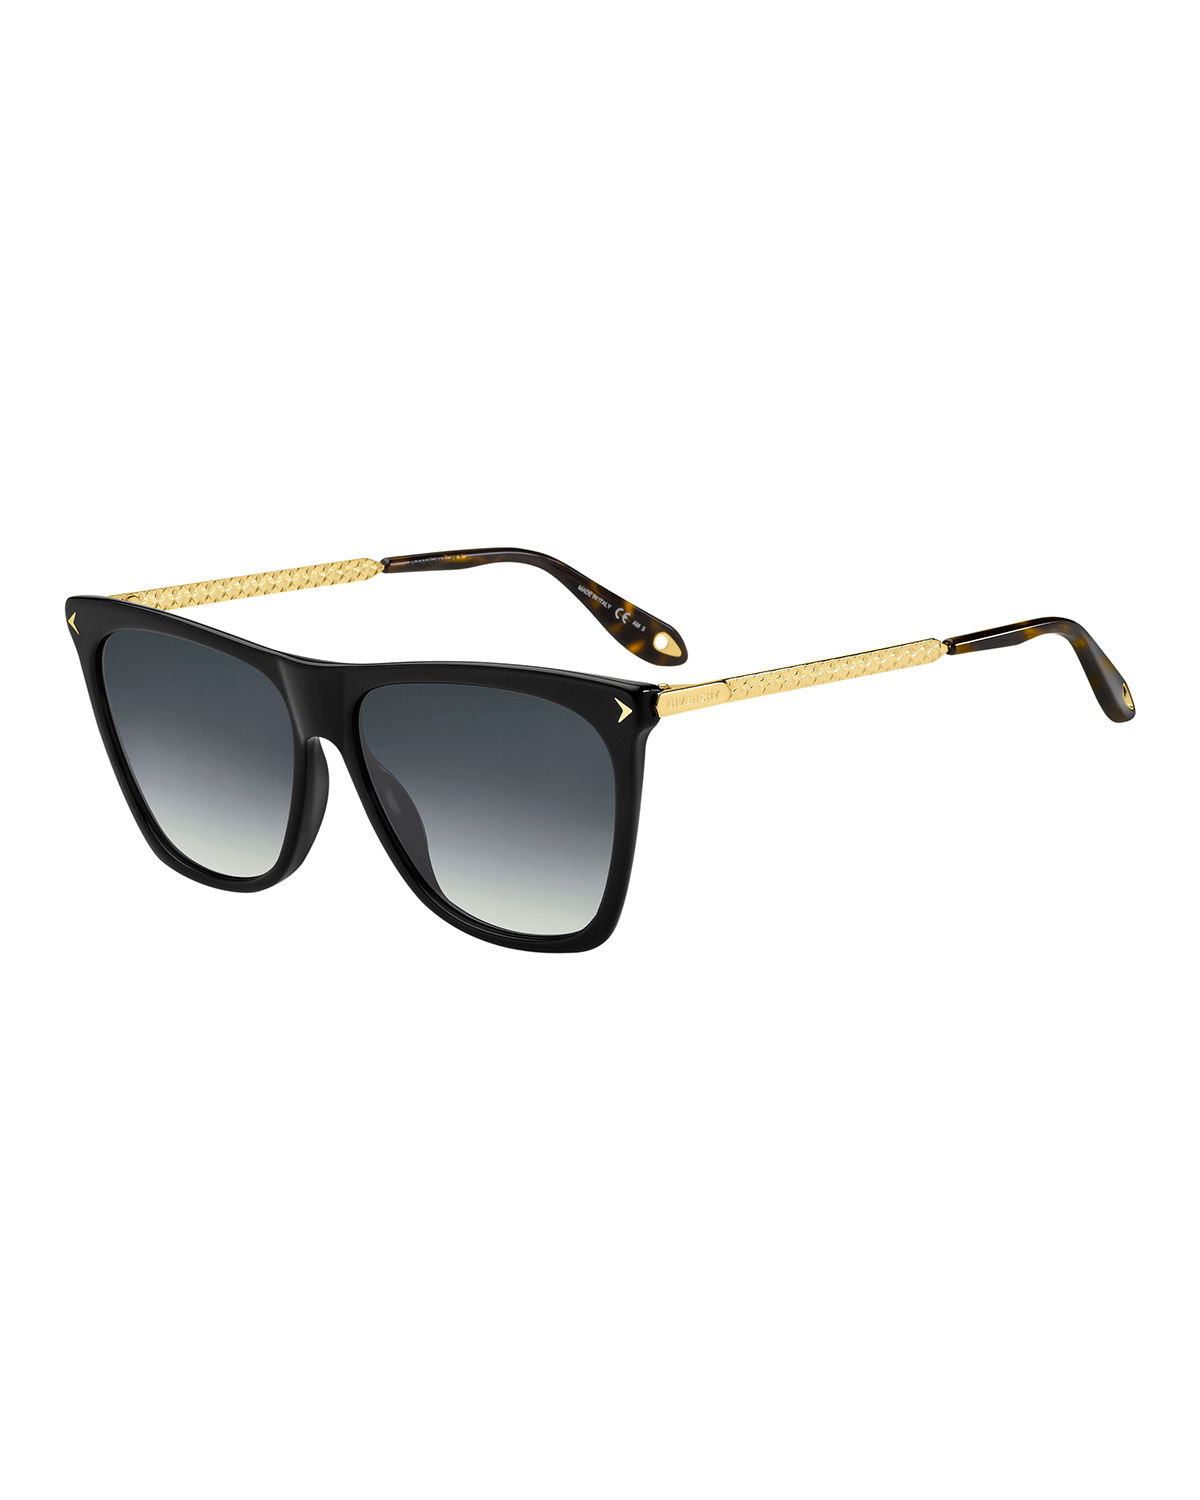 eeabd76af46b9 Givenchy Square Acetate   Metal Gradient Sunglasses